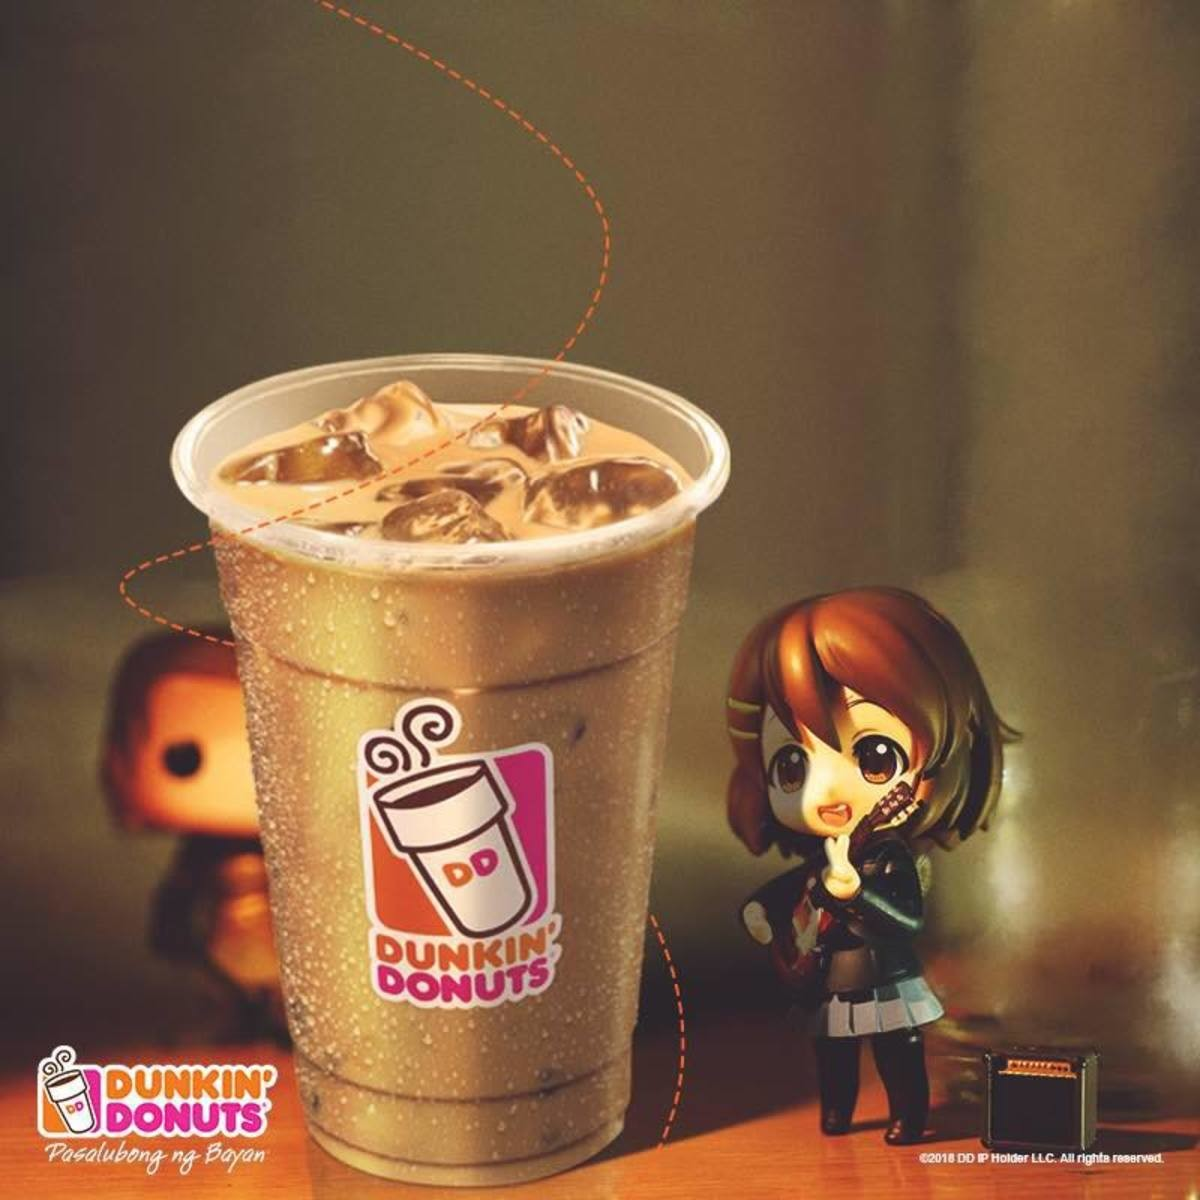 America Runs on Dunkin?. Real ad join list: SmolHol (1472 subs)Mention History join list:. EXERCISE THEY THINK WE ACTUALLY WANT TO LIVE IN THIS HELL HOLE